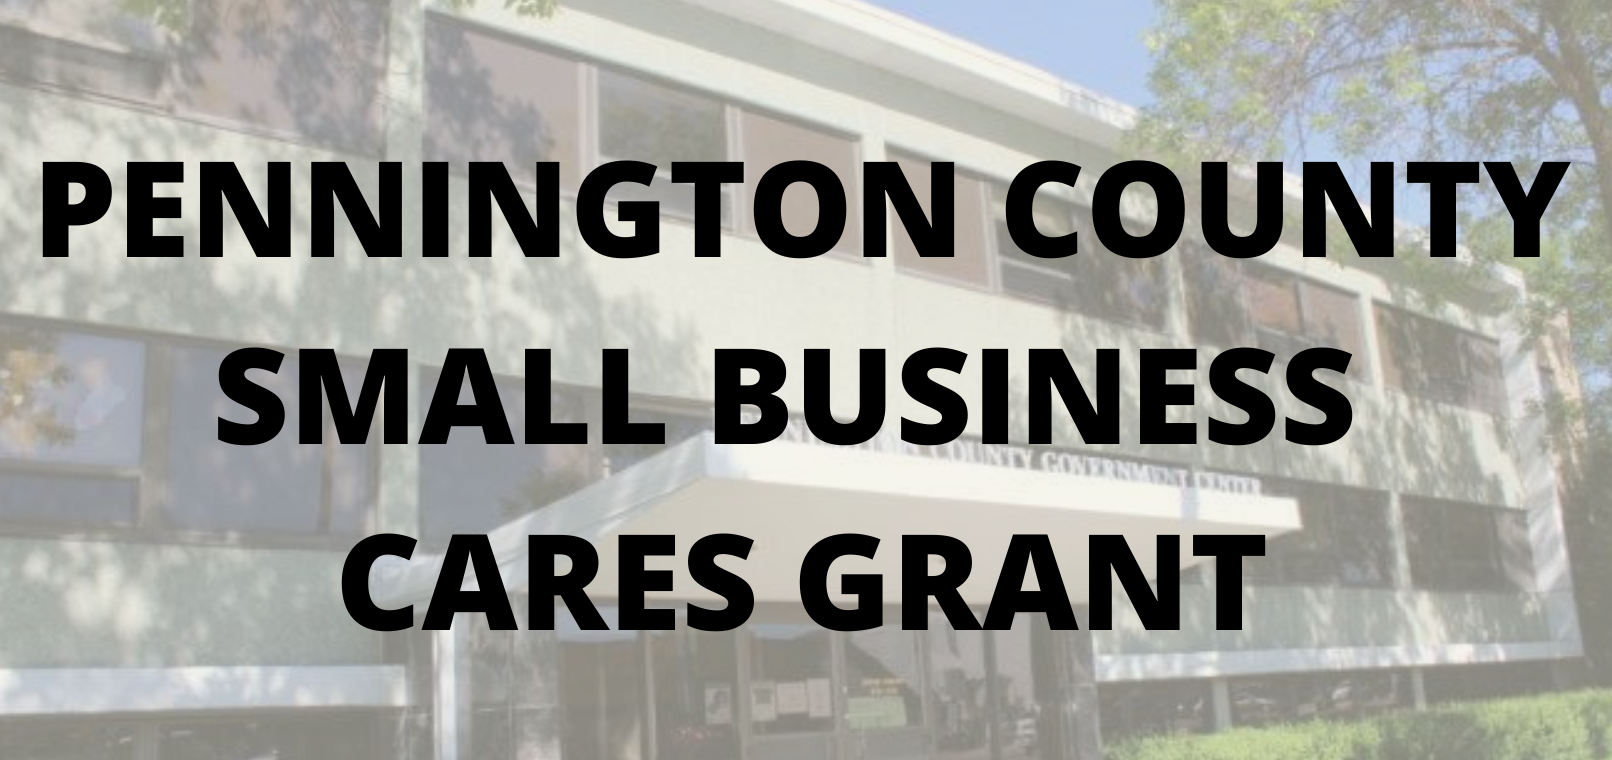 Pennington-County-Small-Business-CARES-Grant Application